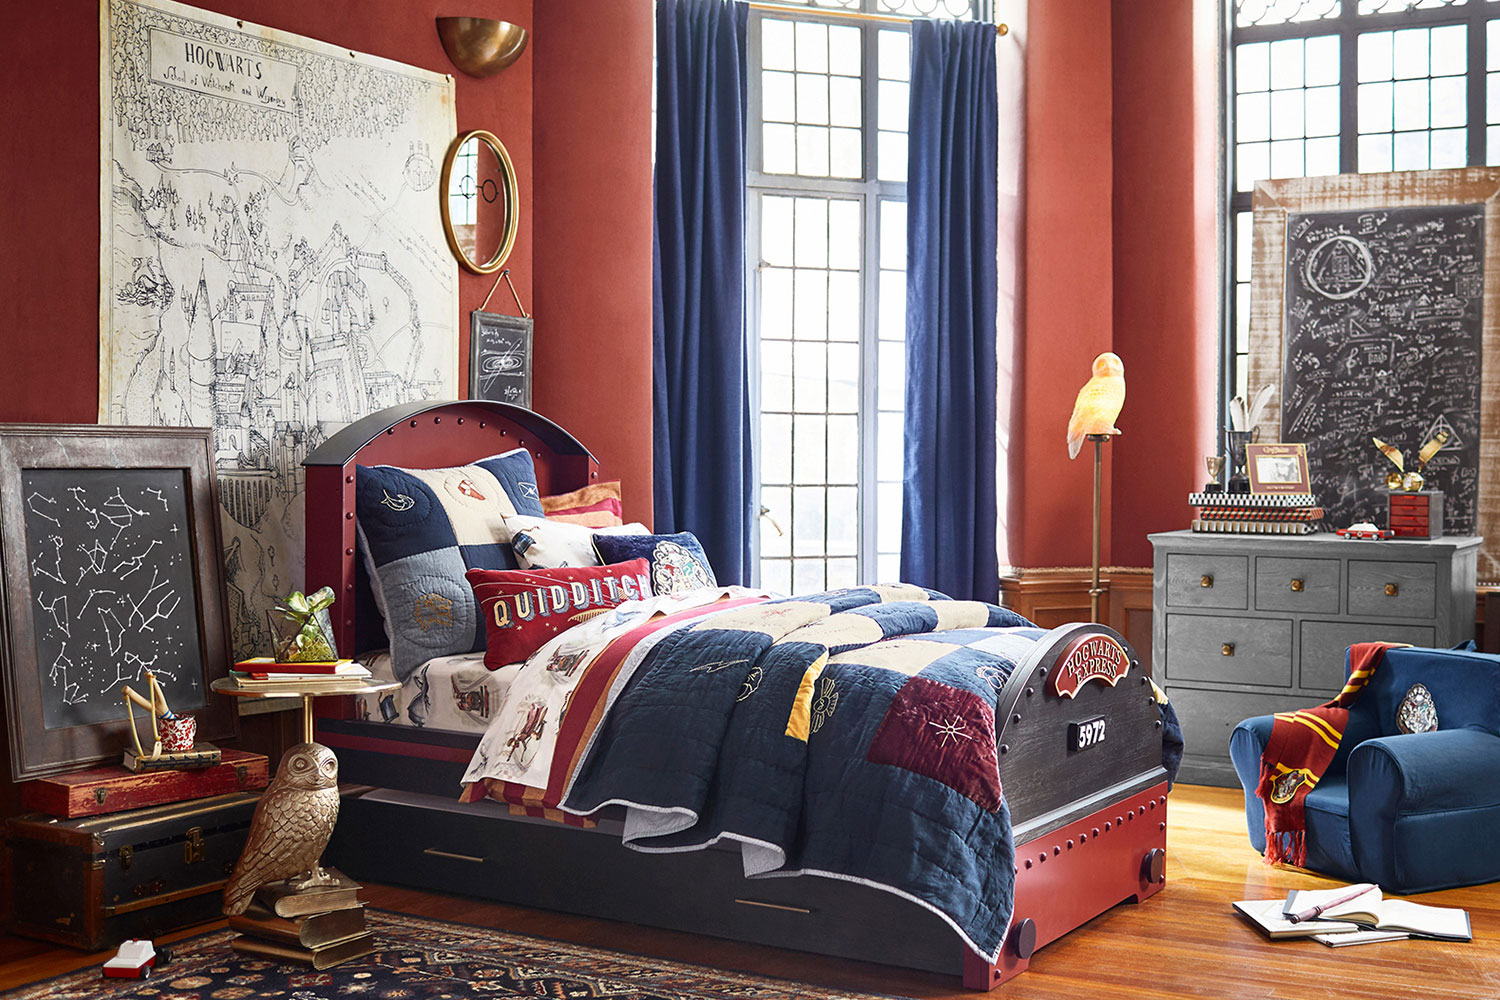 IF YOU LOVE HARRY POTTER THEN COME OVER HERE  161018-potterybarnkidsharrypotter-8